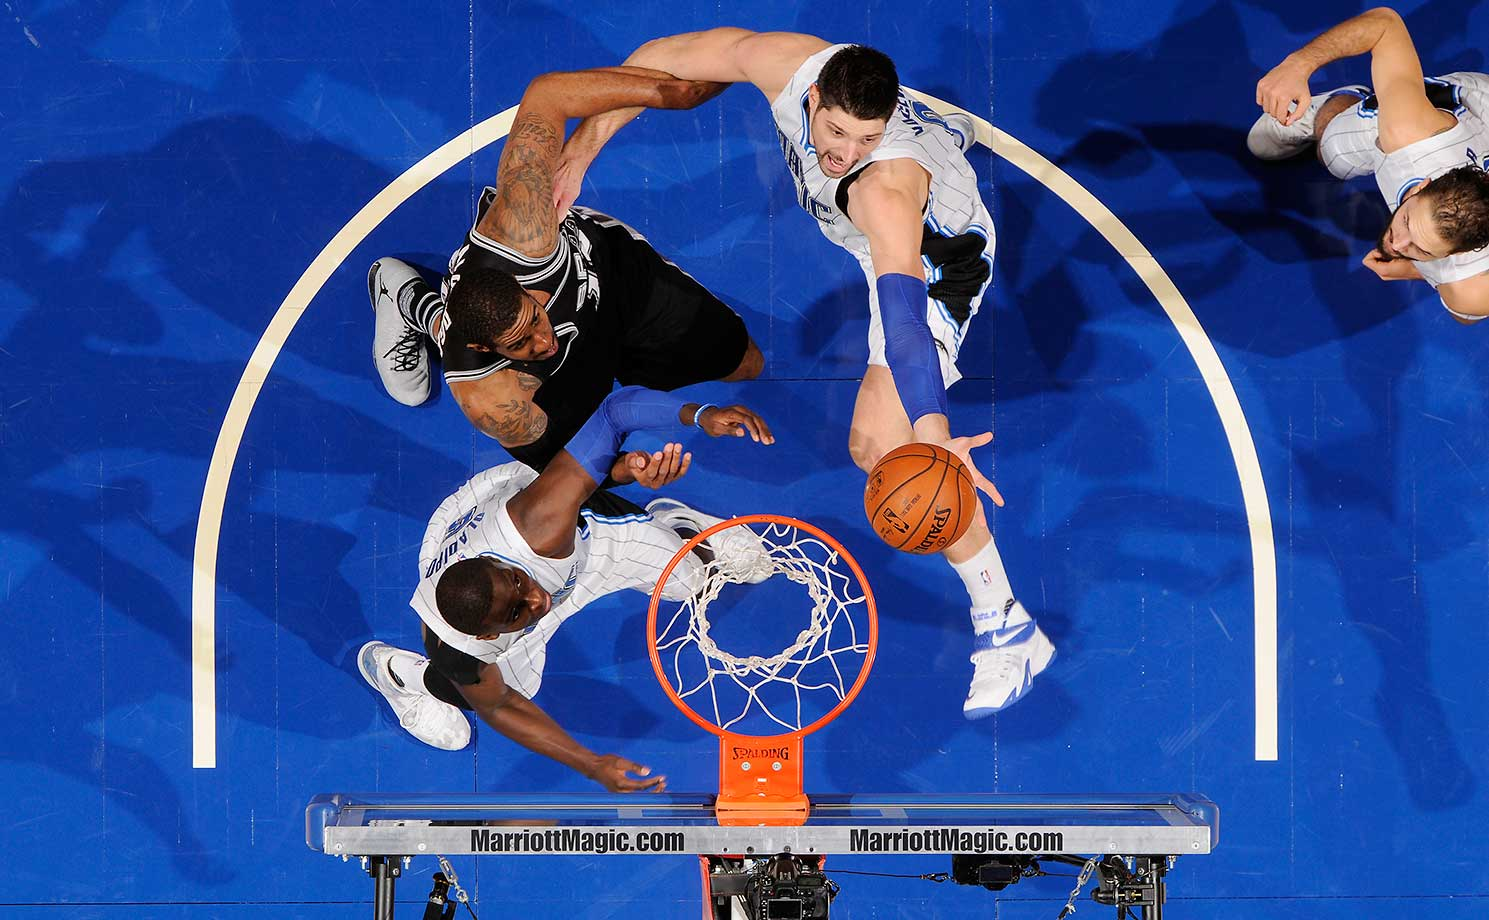 Nikola Vucevic of the Orlando Magic goes up for a rebound against the San Antonio Spurs.